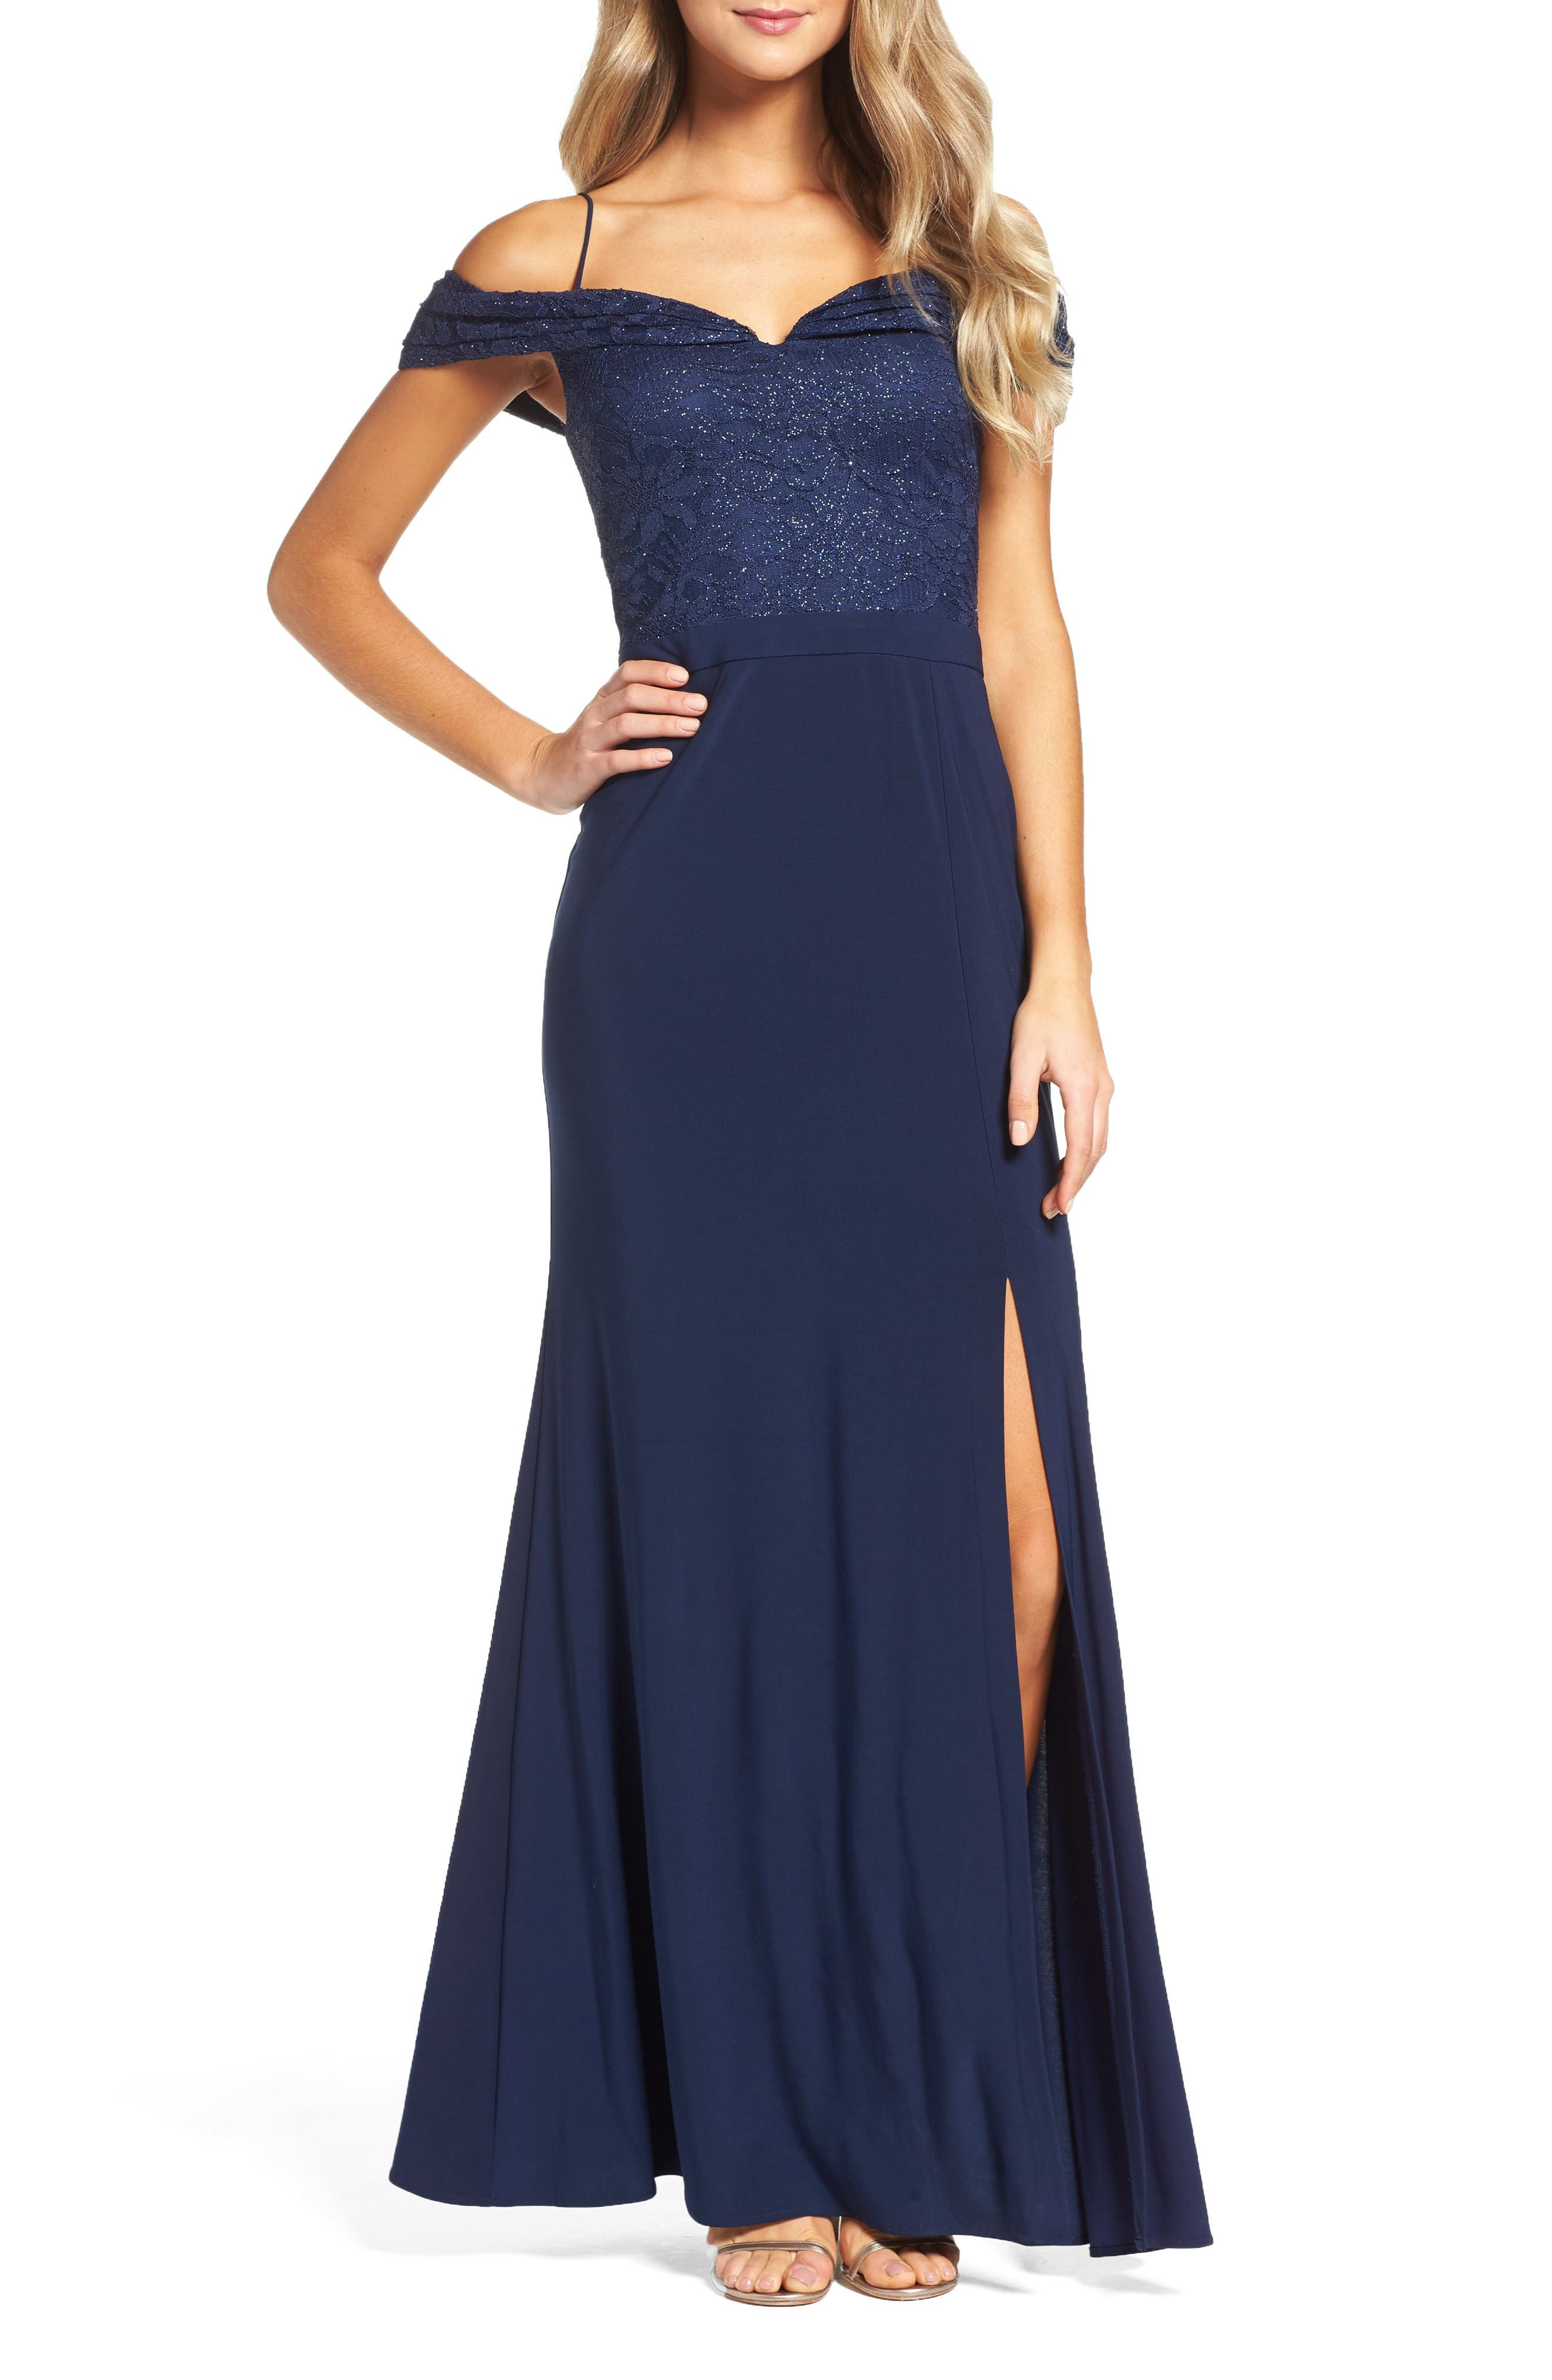 Alternate Image 1 Selected - Morgan & Co. Sparkle Off the Shoulder Gown